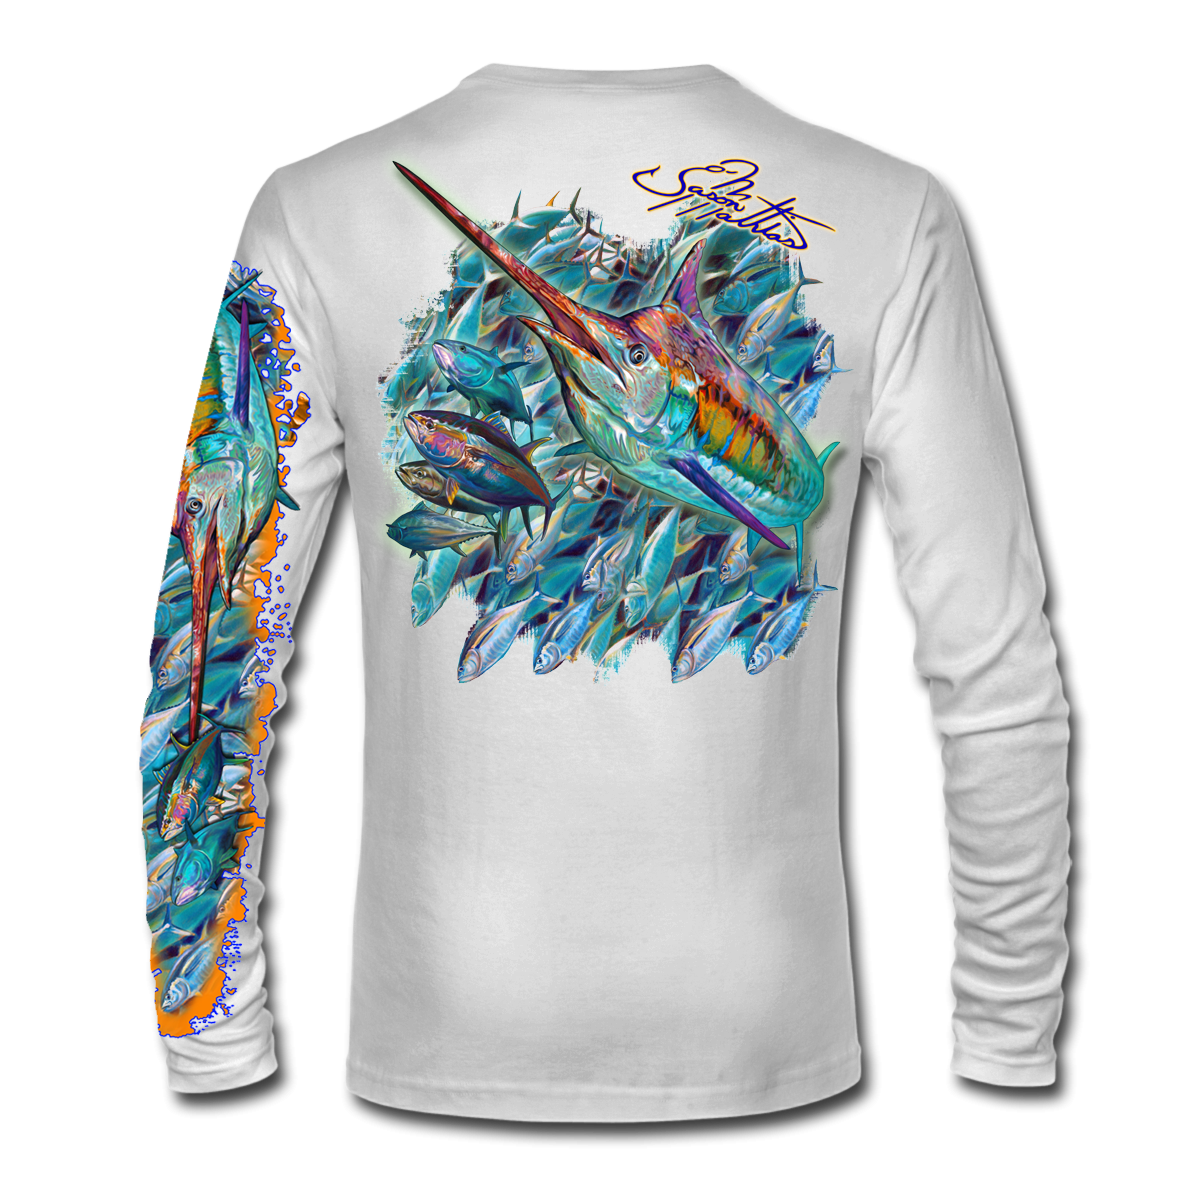 marlin-shirt-white-back-jason-mathias.png